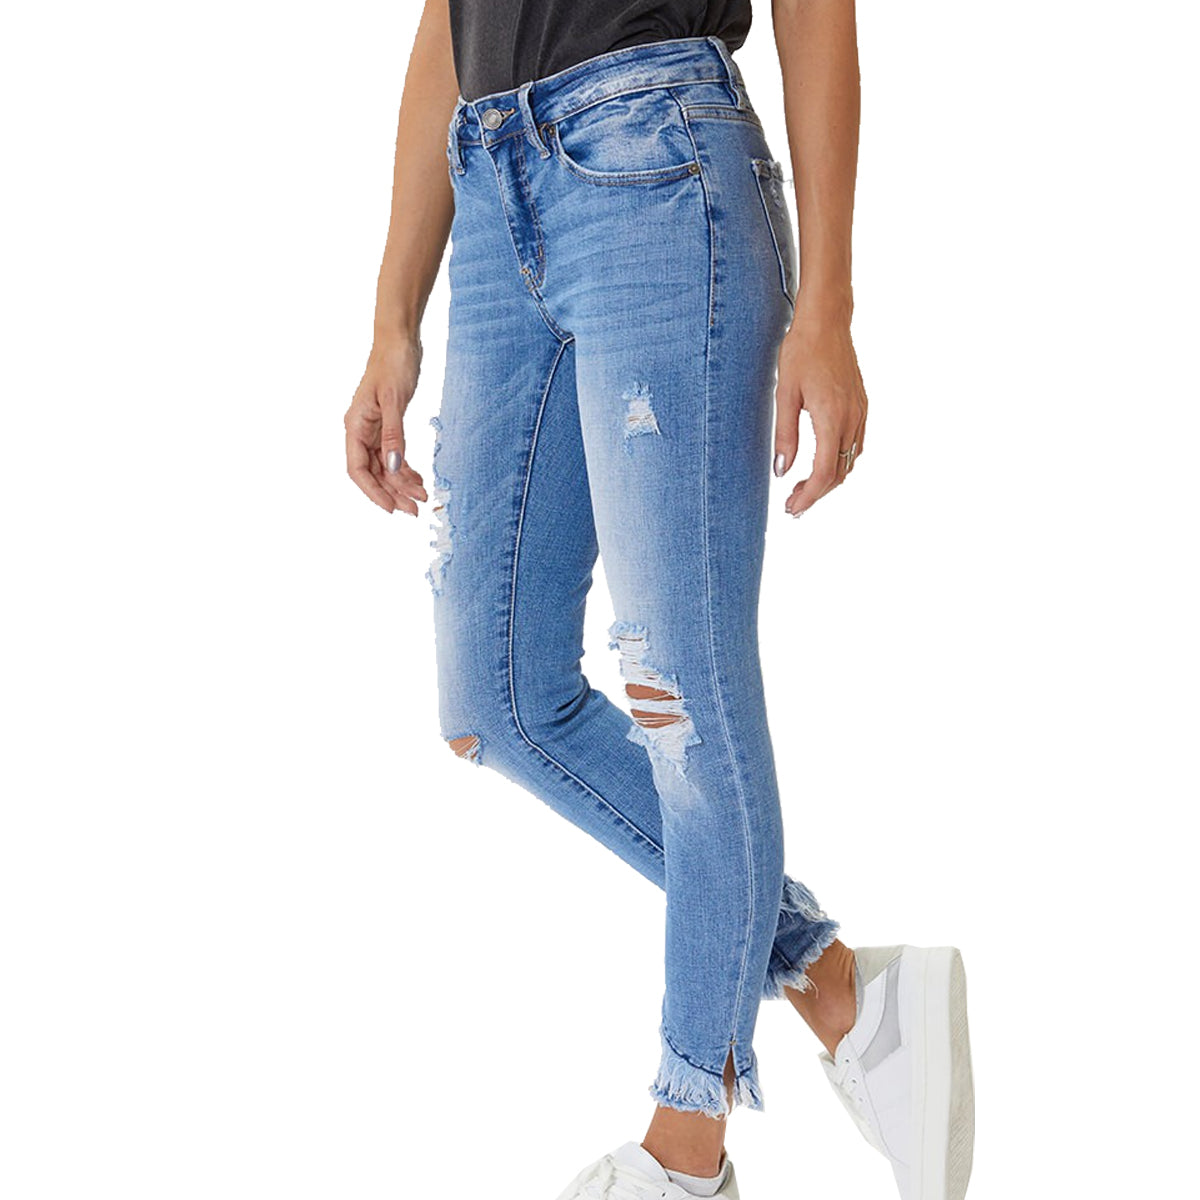 Kan Can Women's Mid-Rise Ankle Skinny Jeans